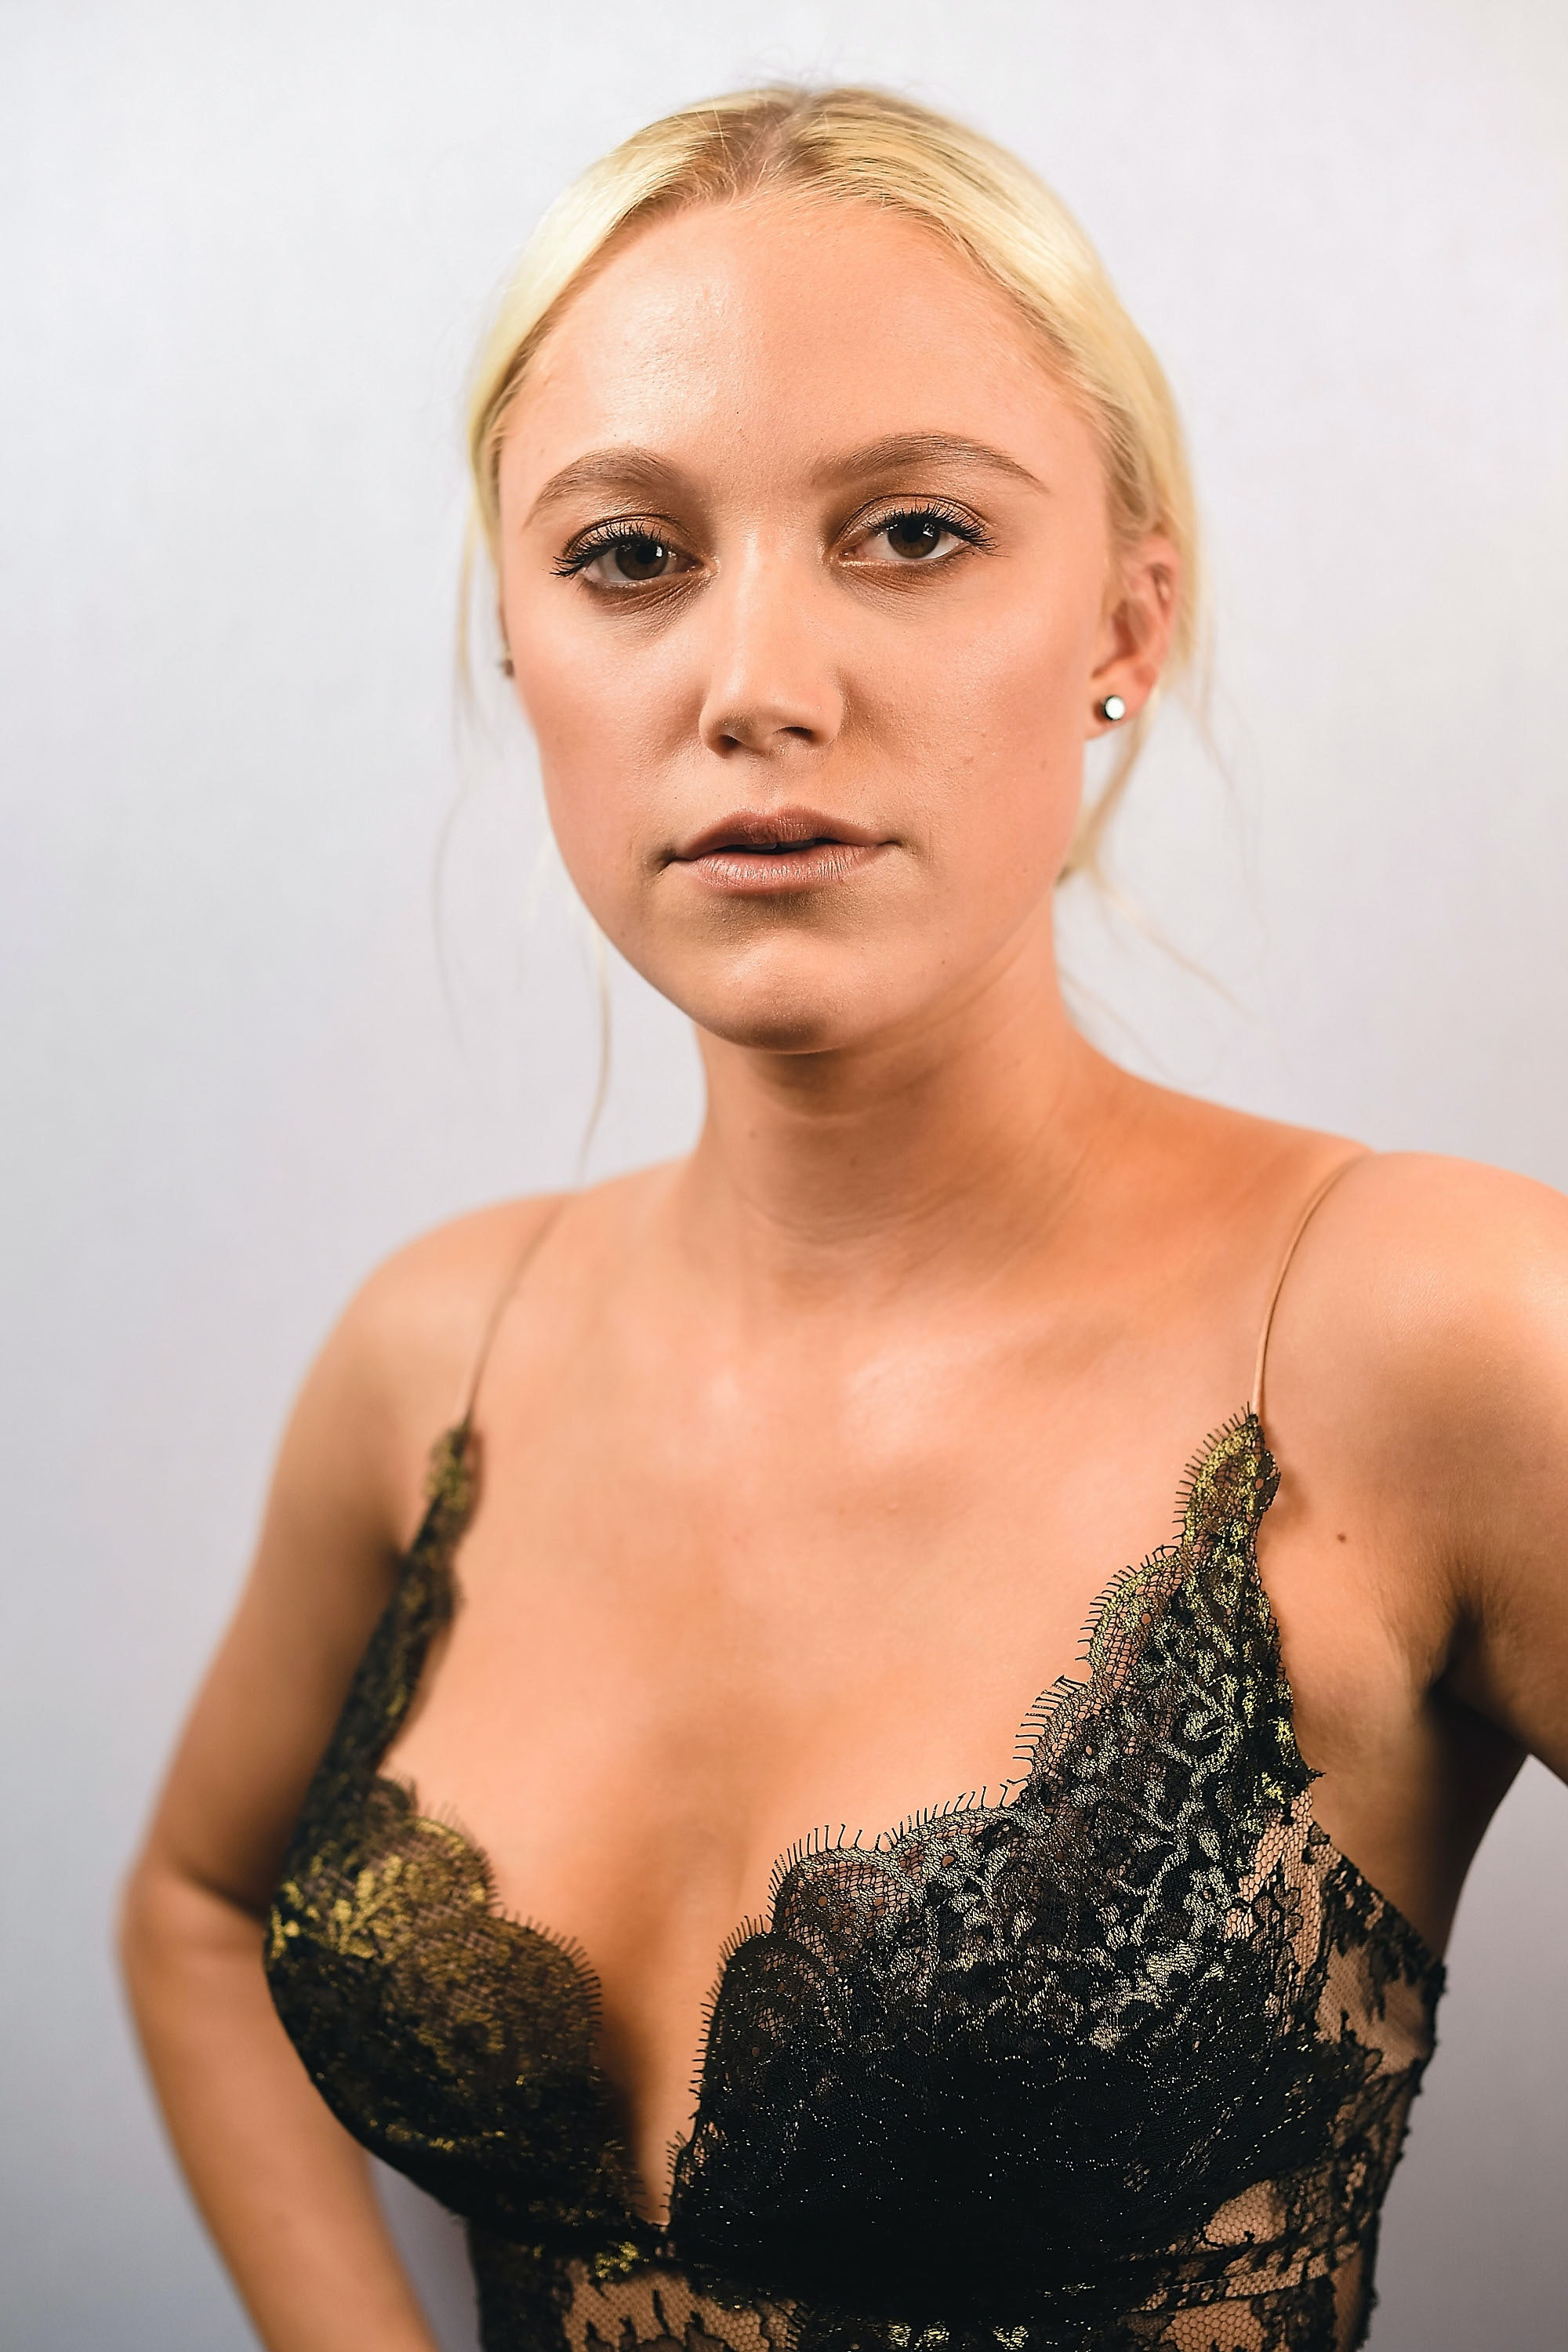 Hacked Maika Monroe naked (81 photos), Pussy, Hot, Twitter, braless 2017